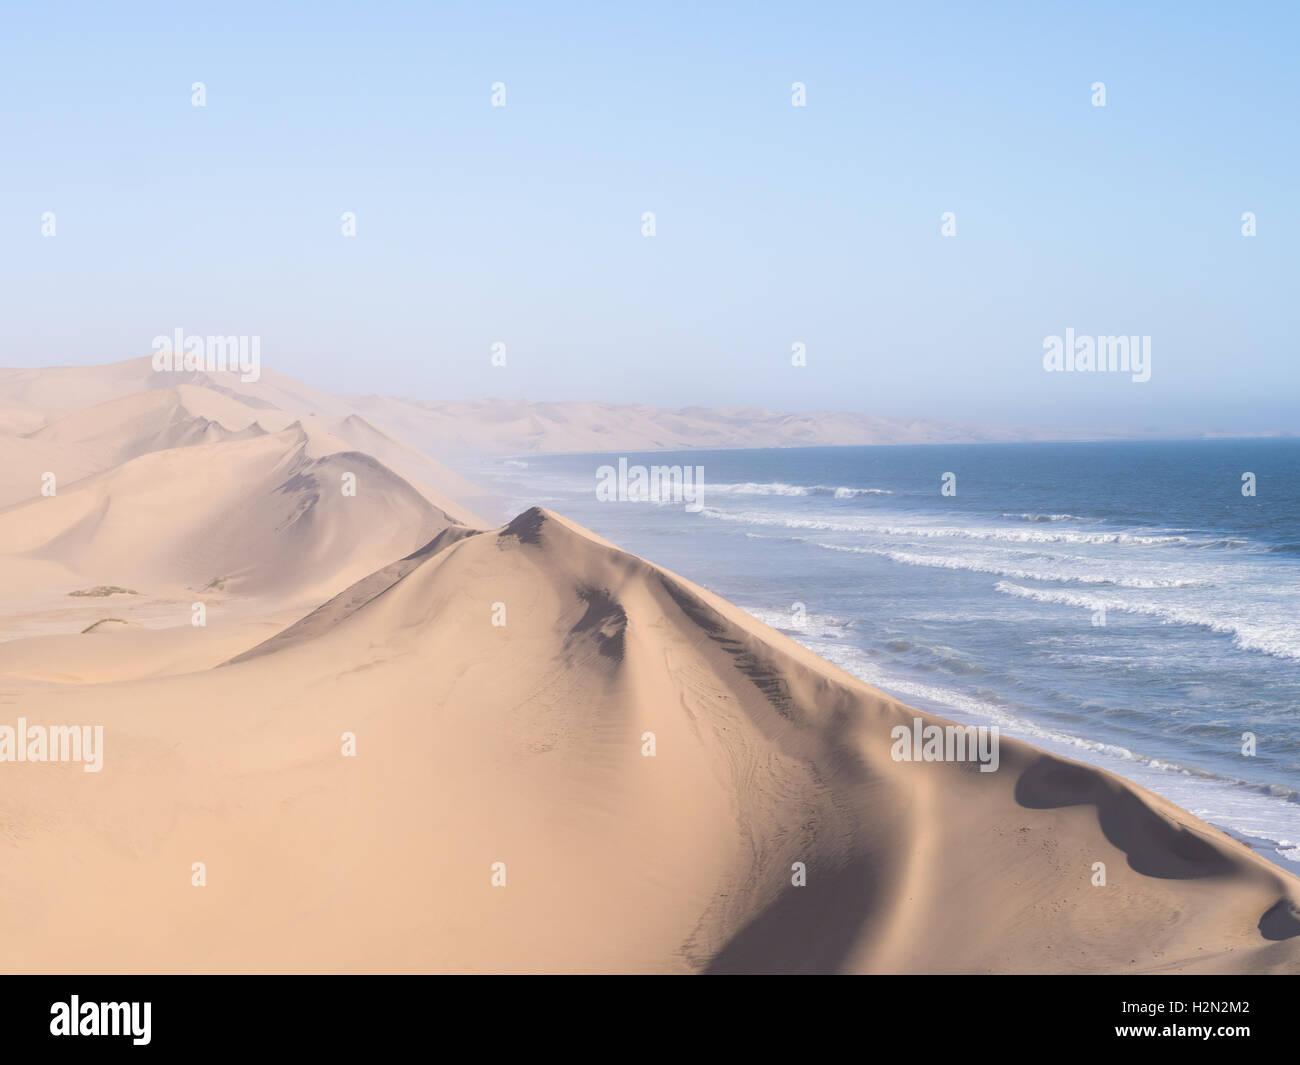 Sandwich Harbour, a lagoon on the Atlantic coast of Namibia, lying south of Walvis Bay, within the Namib-Naukluft - Stock Image